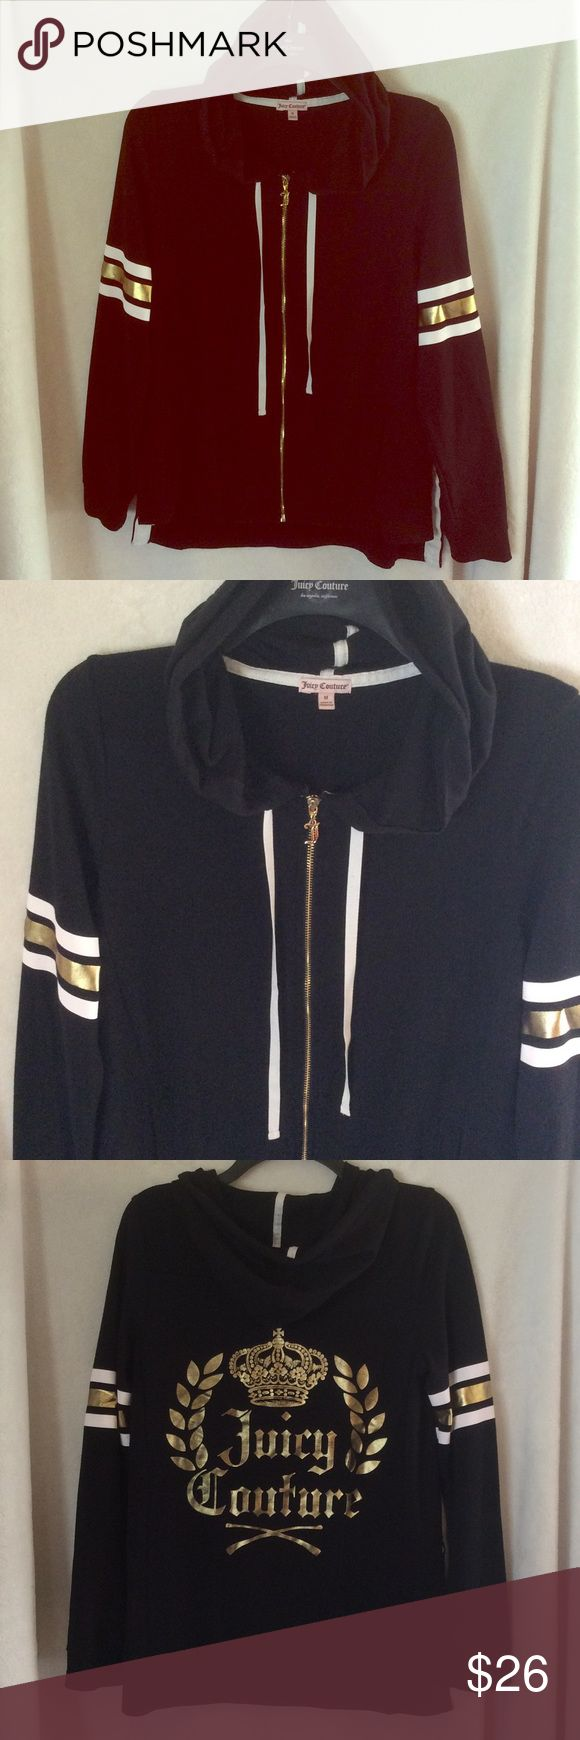 Juicy Couture Woman's Medium Black & Gold Zip Up Juicy Couture Size Medium Woman's Zip Up Hoodie Super Cute Only Worn a handful of times. I'm trying to minimize my collection. Cute Gold & Black  Juicy Couture Tops Sweatshirts & Hoodies